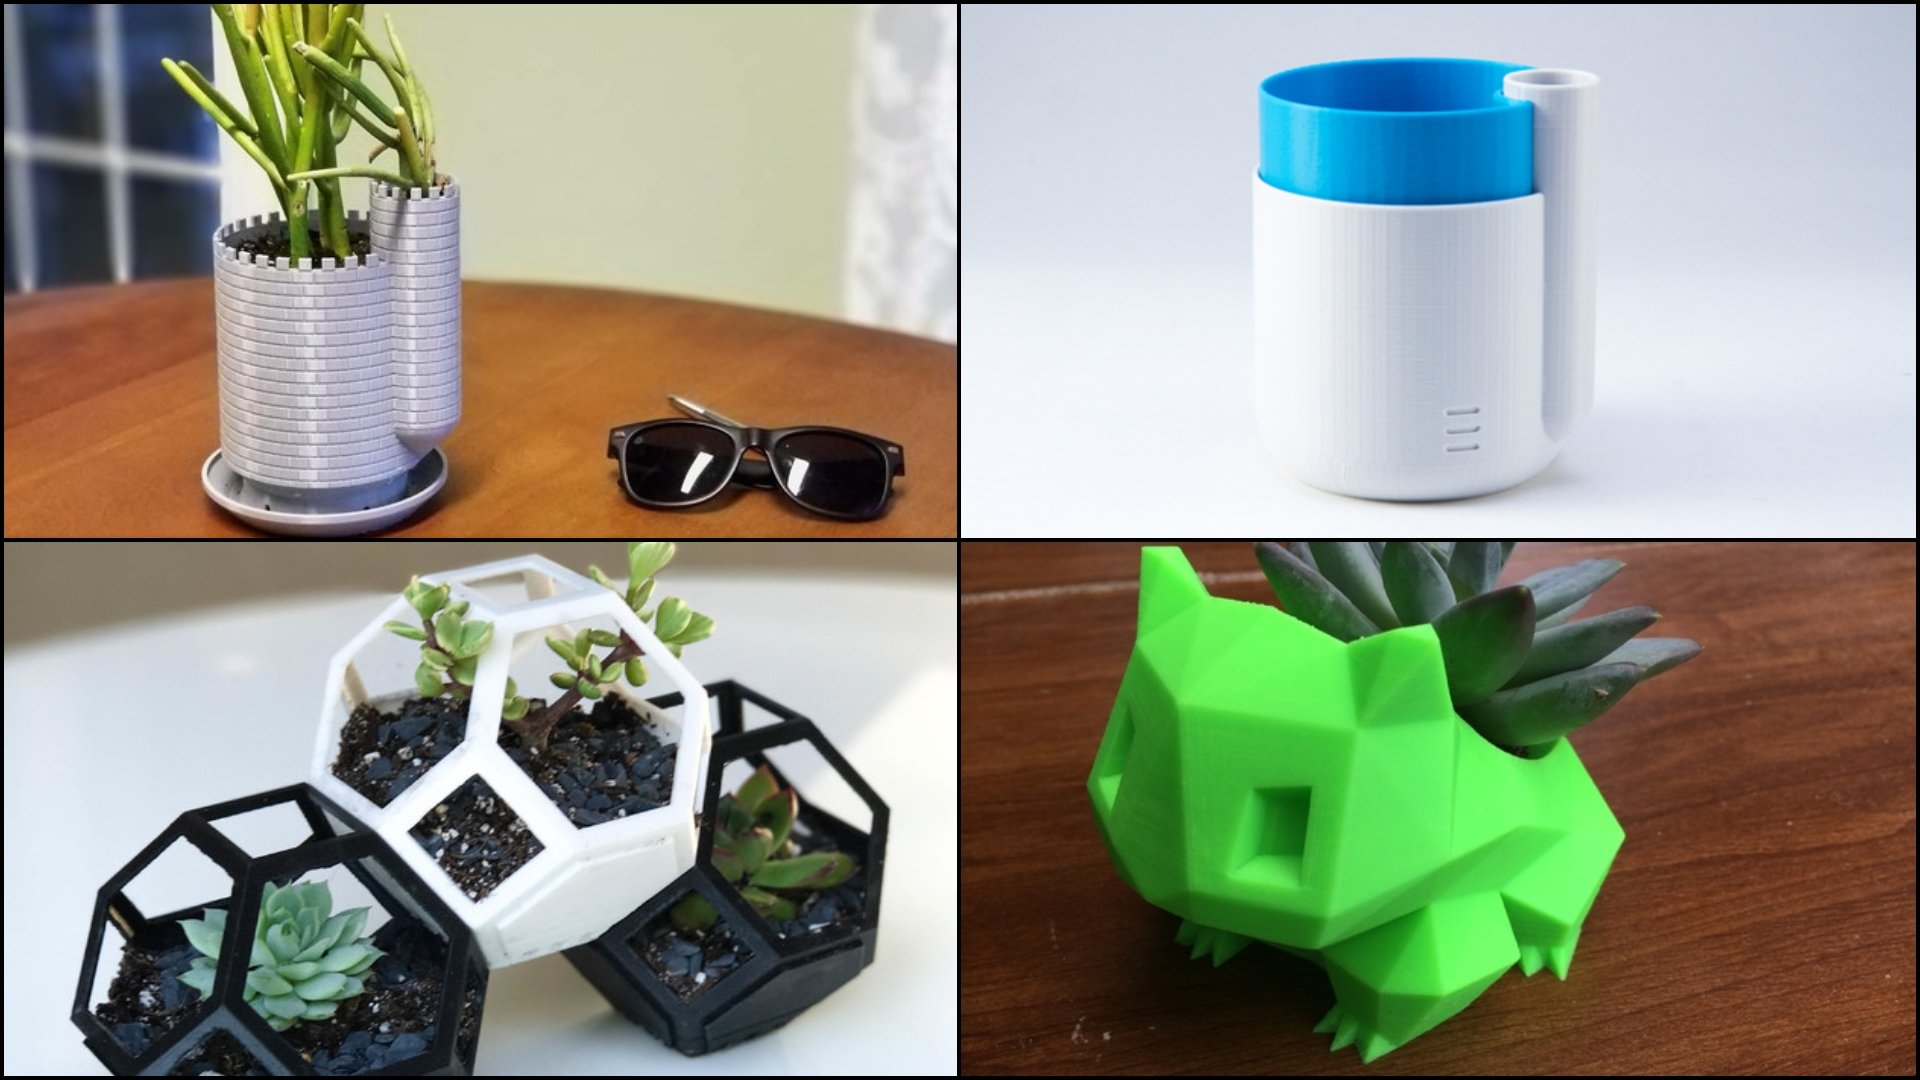 3D Printed Planter: 10 Great Curated Models to 3D Print | All3DP